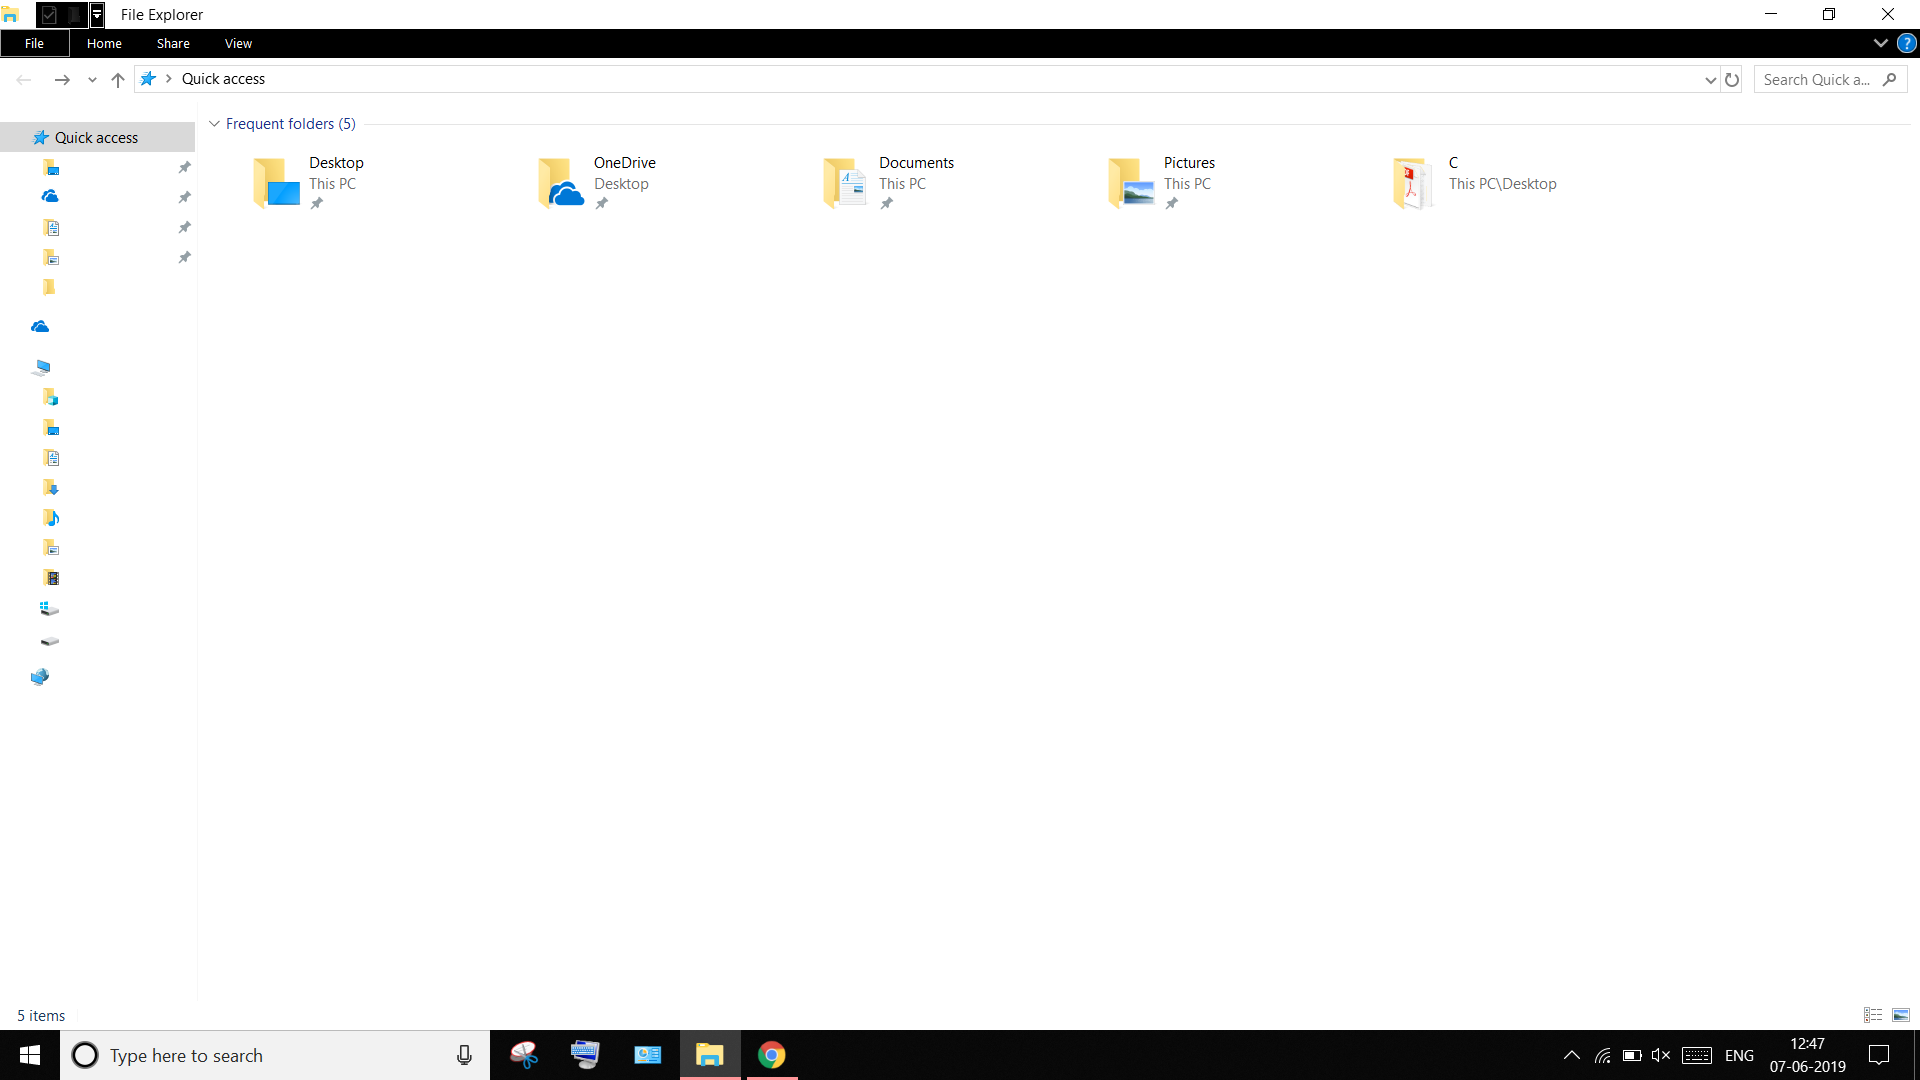 Windows text is invisible (unless I hover over it) 55d98854-9afe-4f4f-b152-149a5c9b4062?upload=true.png